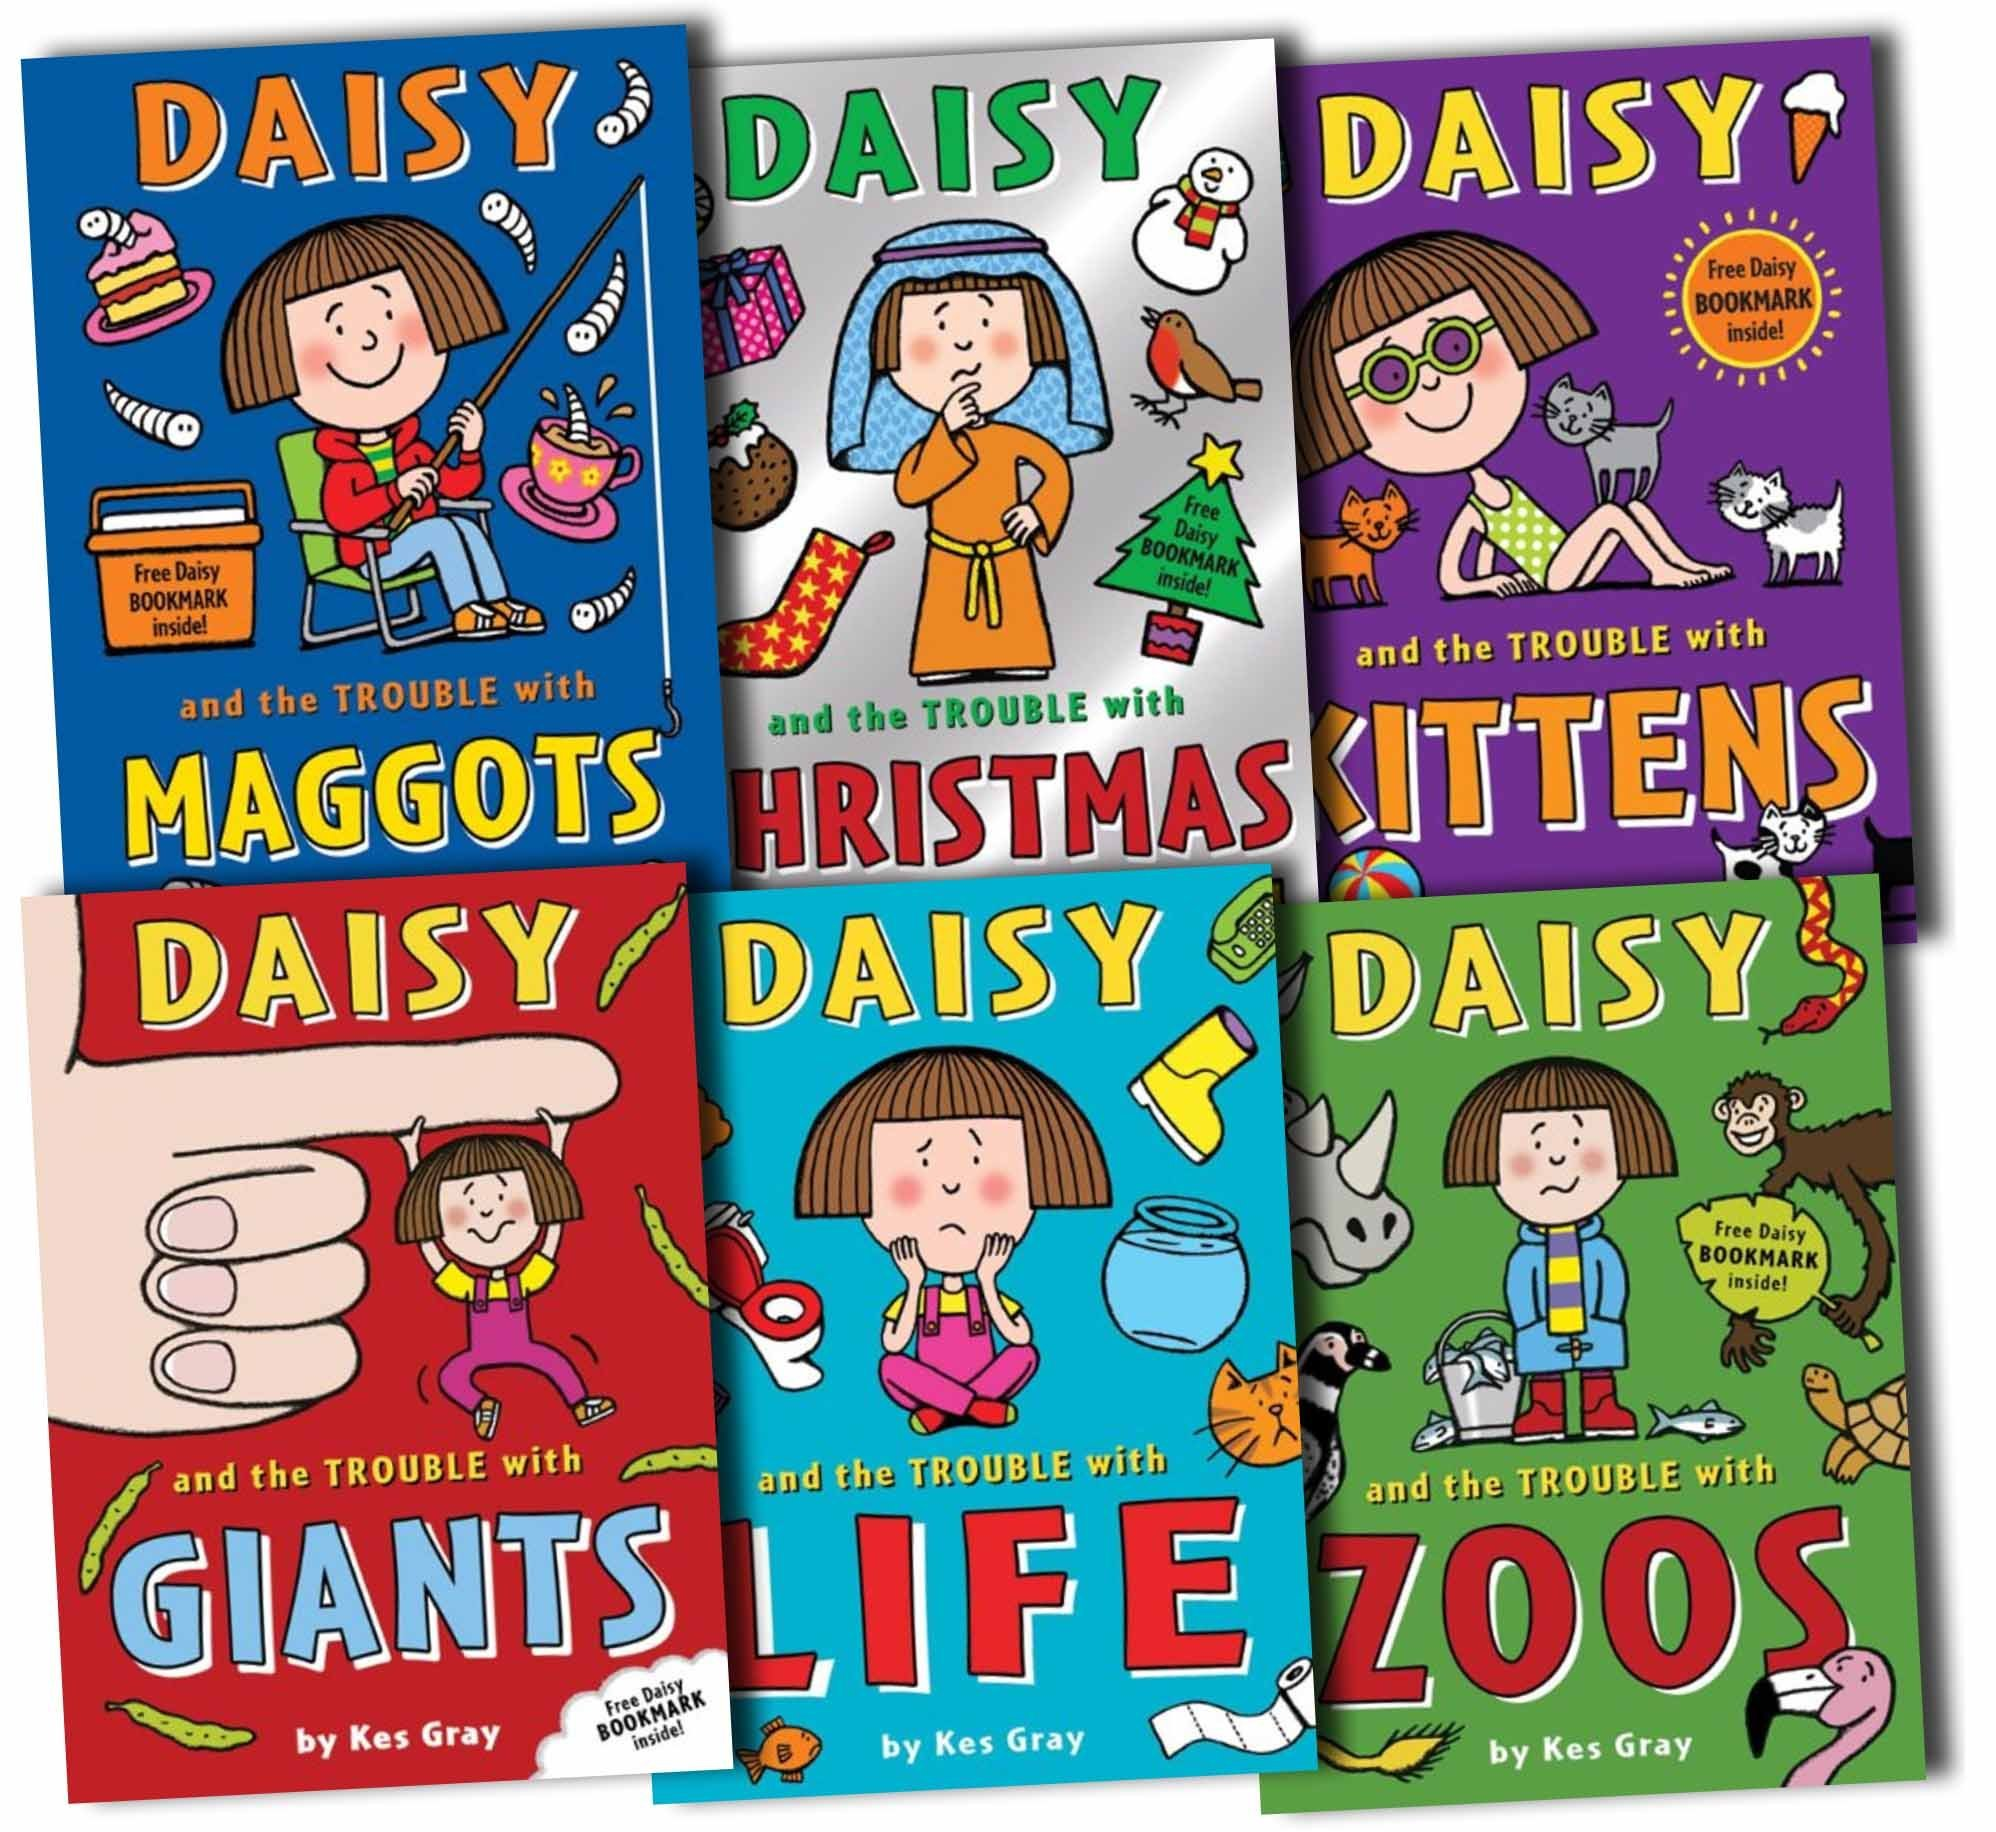 Daisy and the Trouble Collection Pack Kes Gray 6 Books Set New RRP: £29.94:  Amazon.co.uk: KES GRAY: 9781849413381: Books